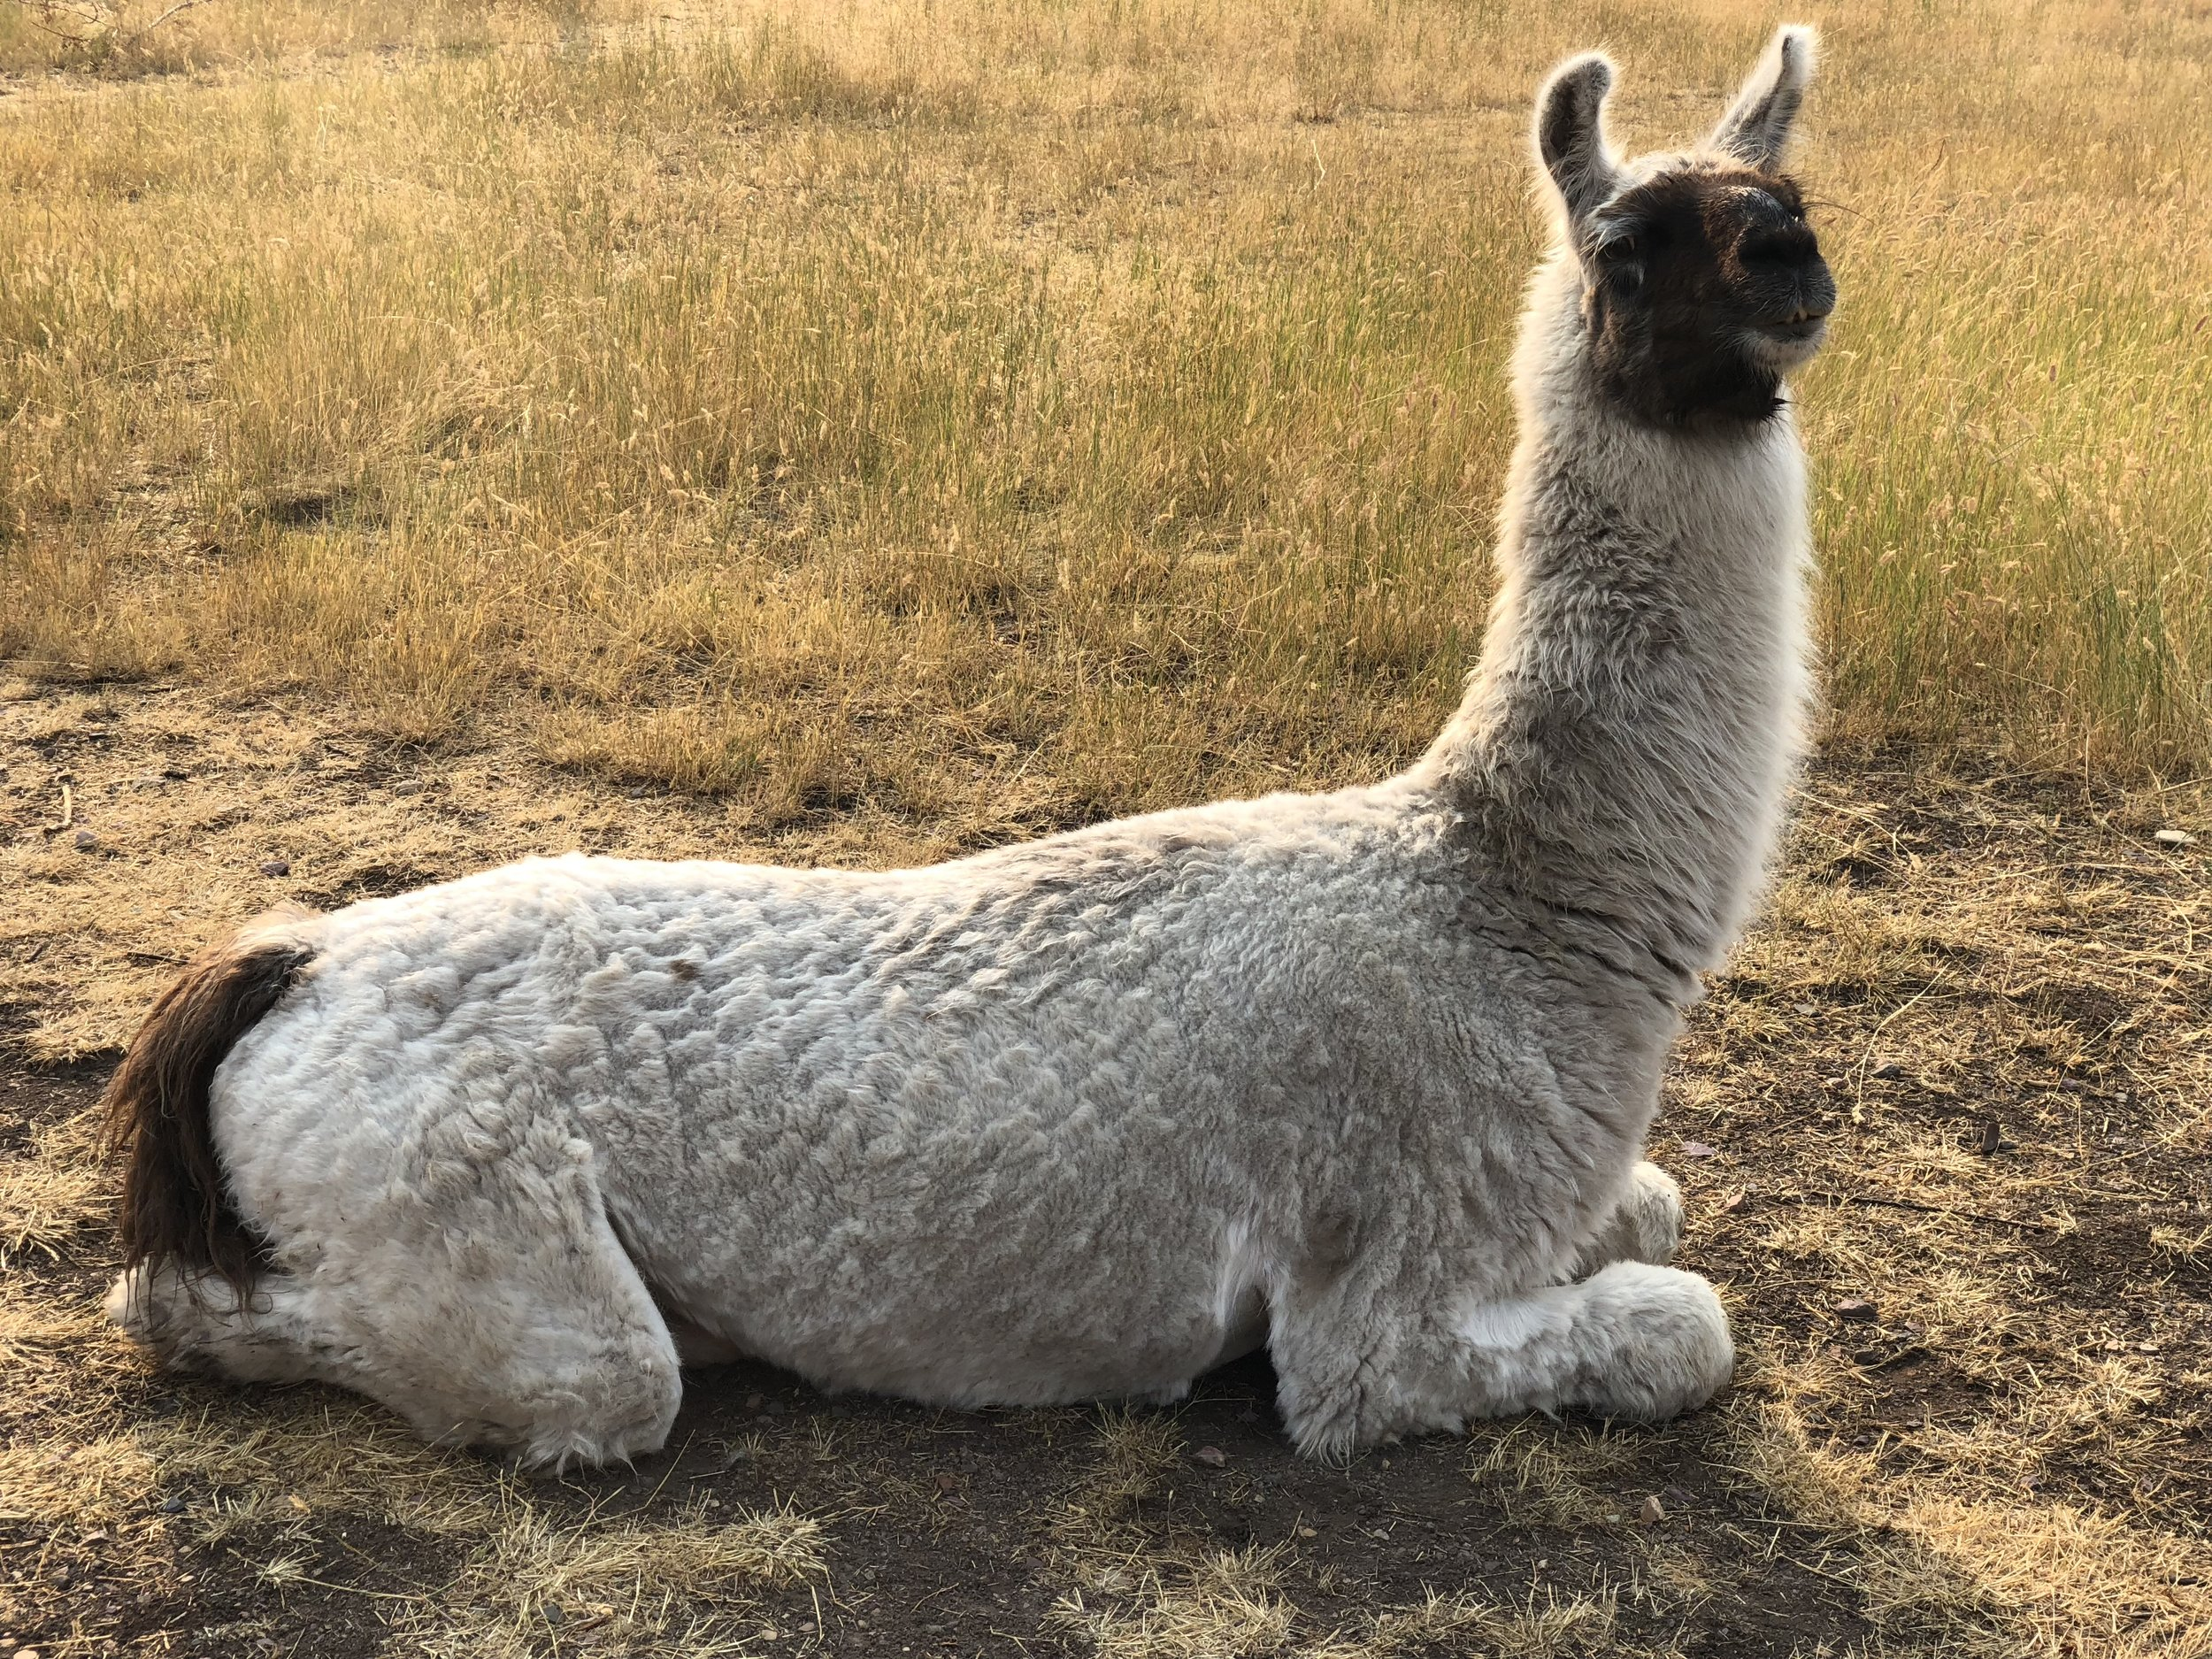 A resident of the llama Ranch